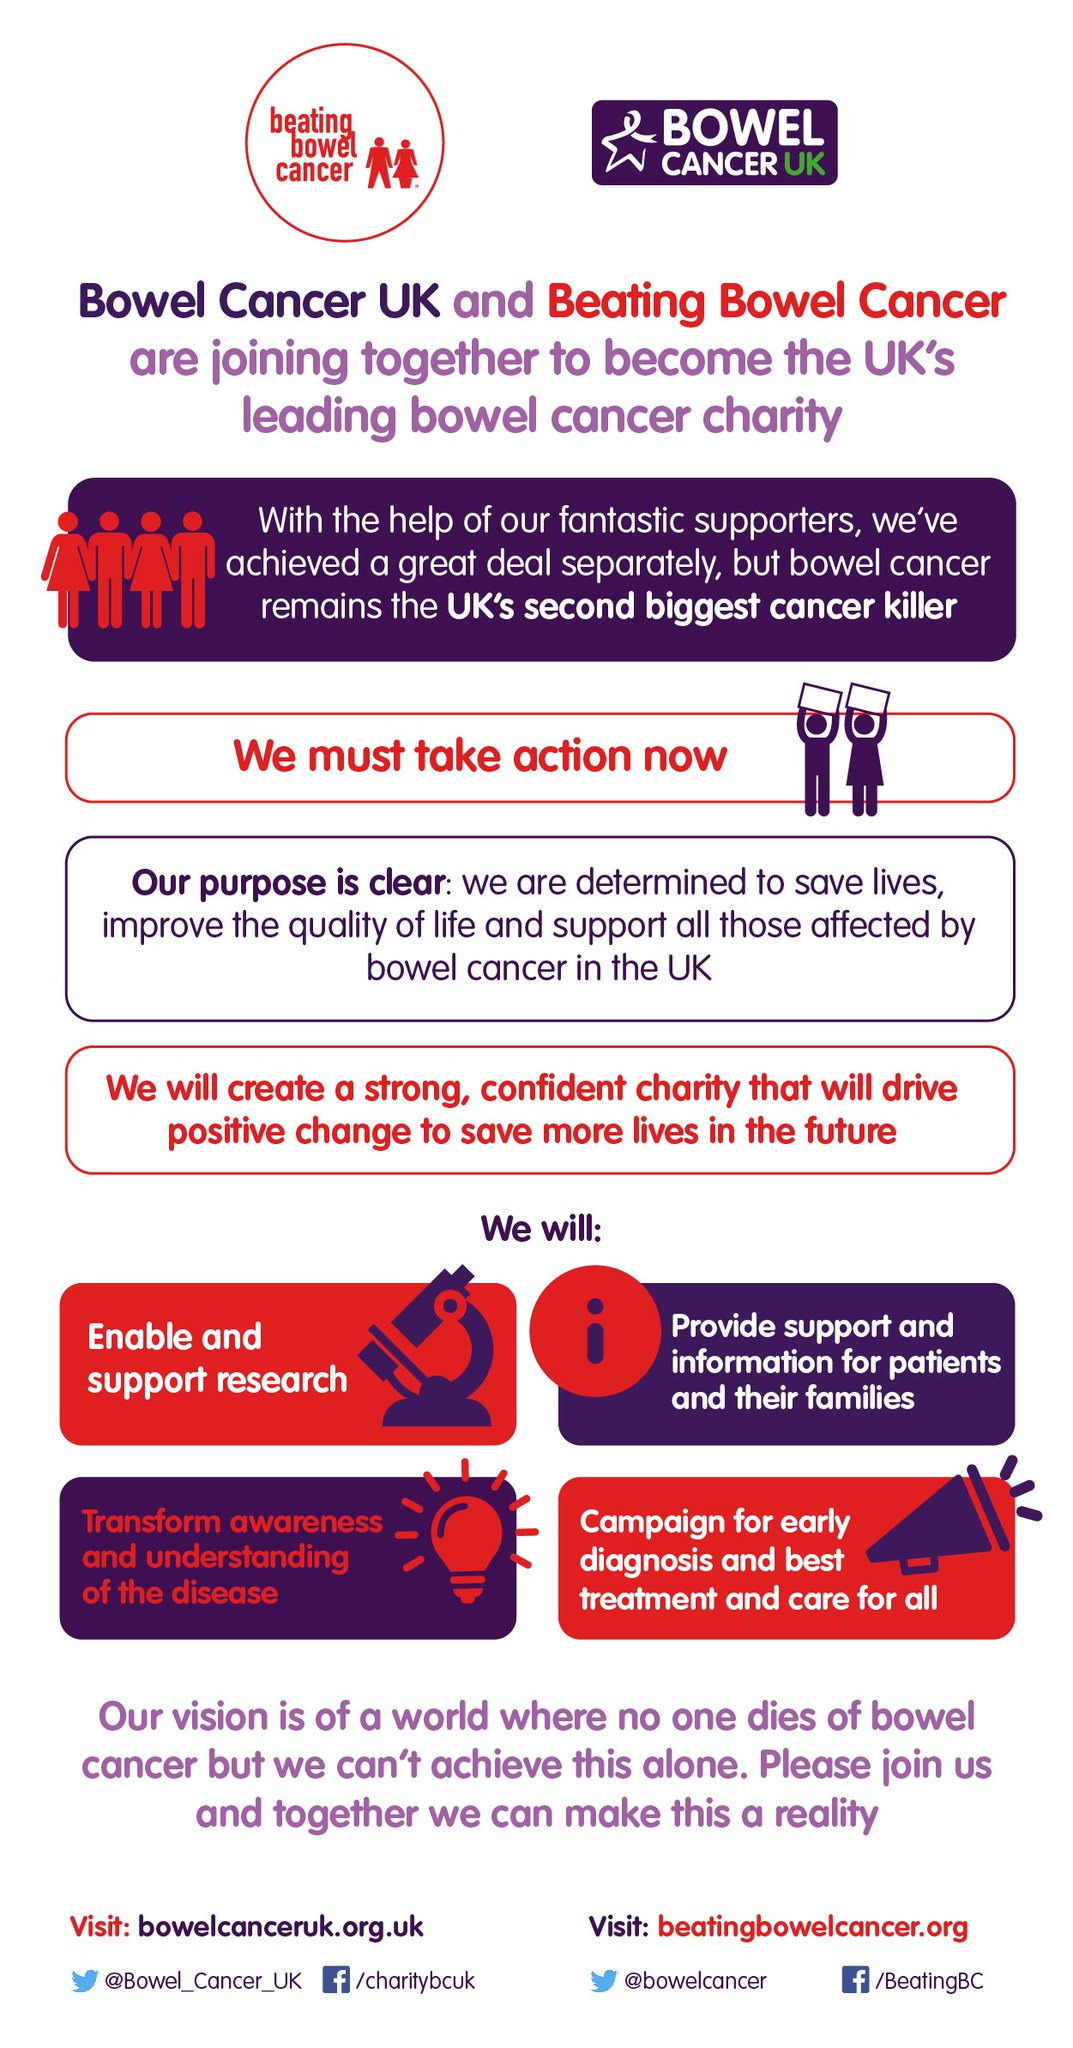 Nhs England And Nhs Improvement On Twitter Next Year Bowel Cancer Uk And Bowelcancer Will Be Merging To Become The Uk S Leading Bowel Cancer Charity Together They Re Determined To Save Lives Improve Quality Of